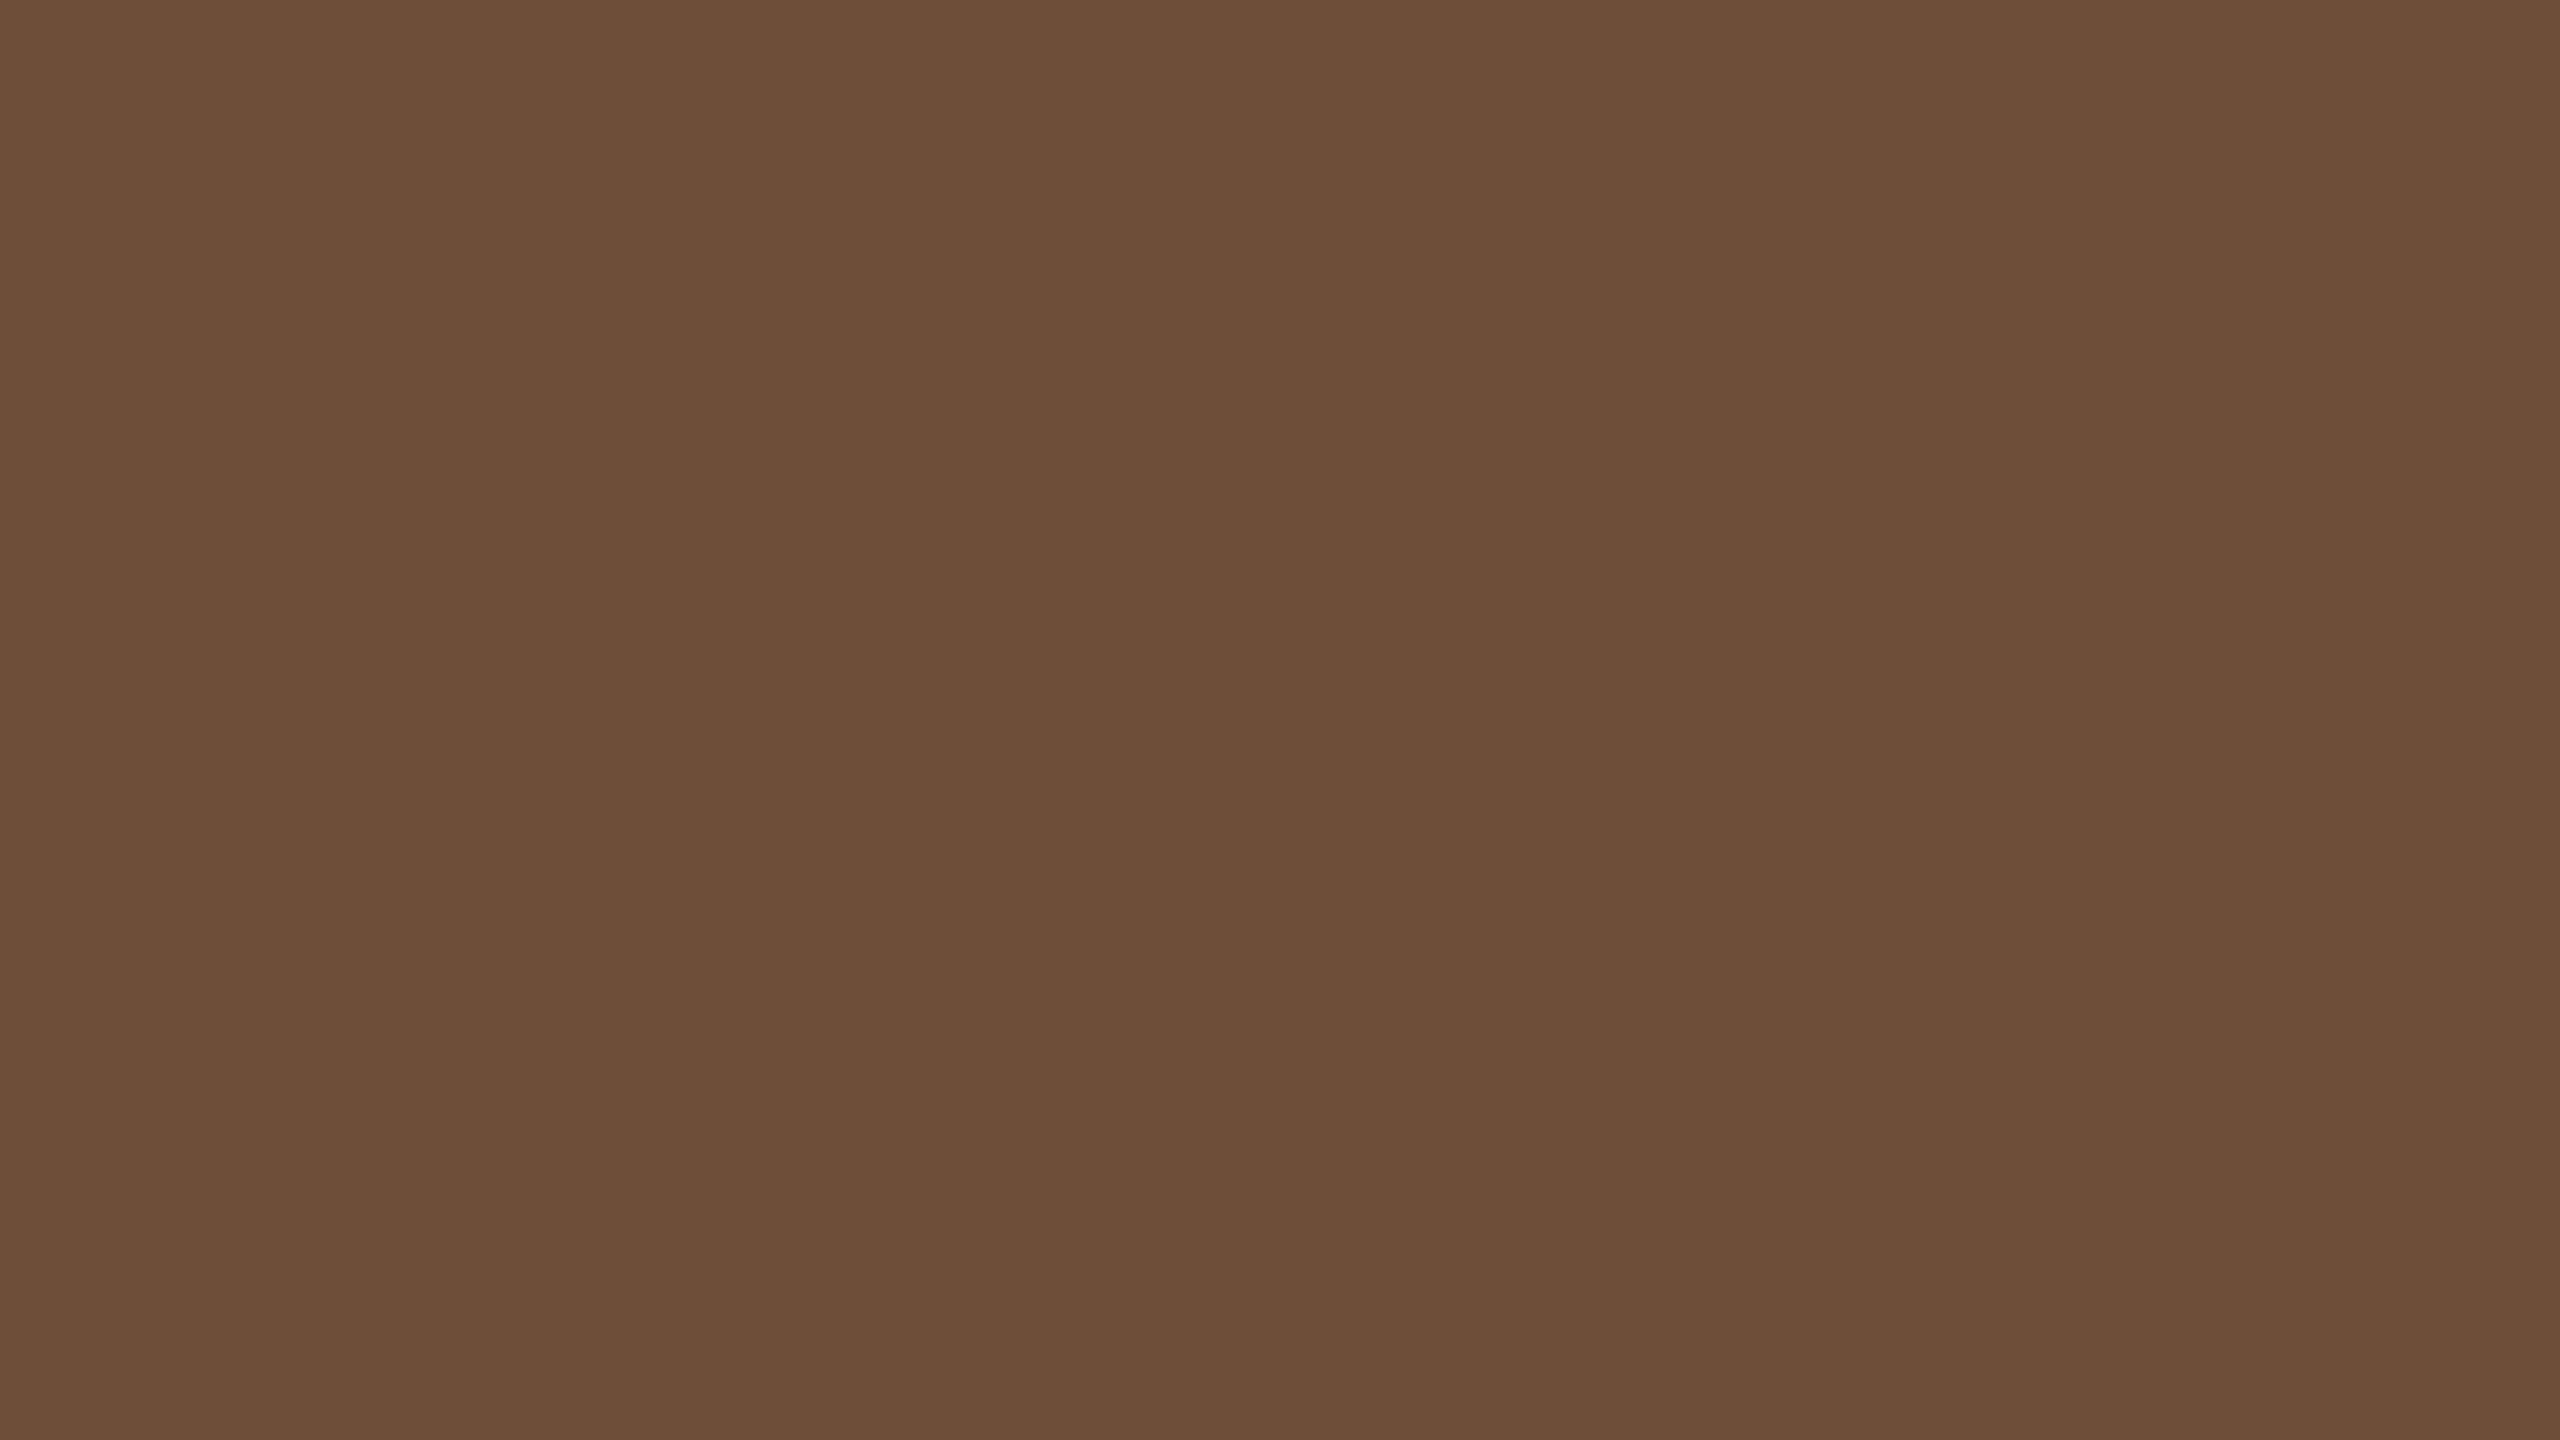 2560x1440 Tuscan Brown Solid Color Background